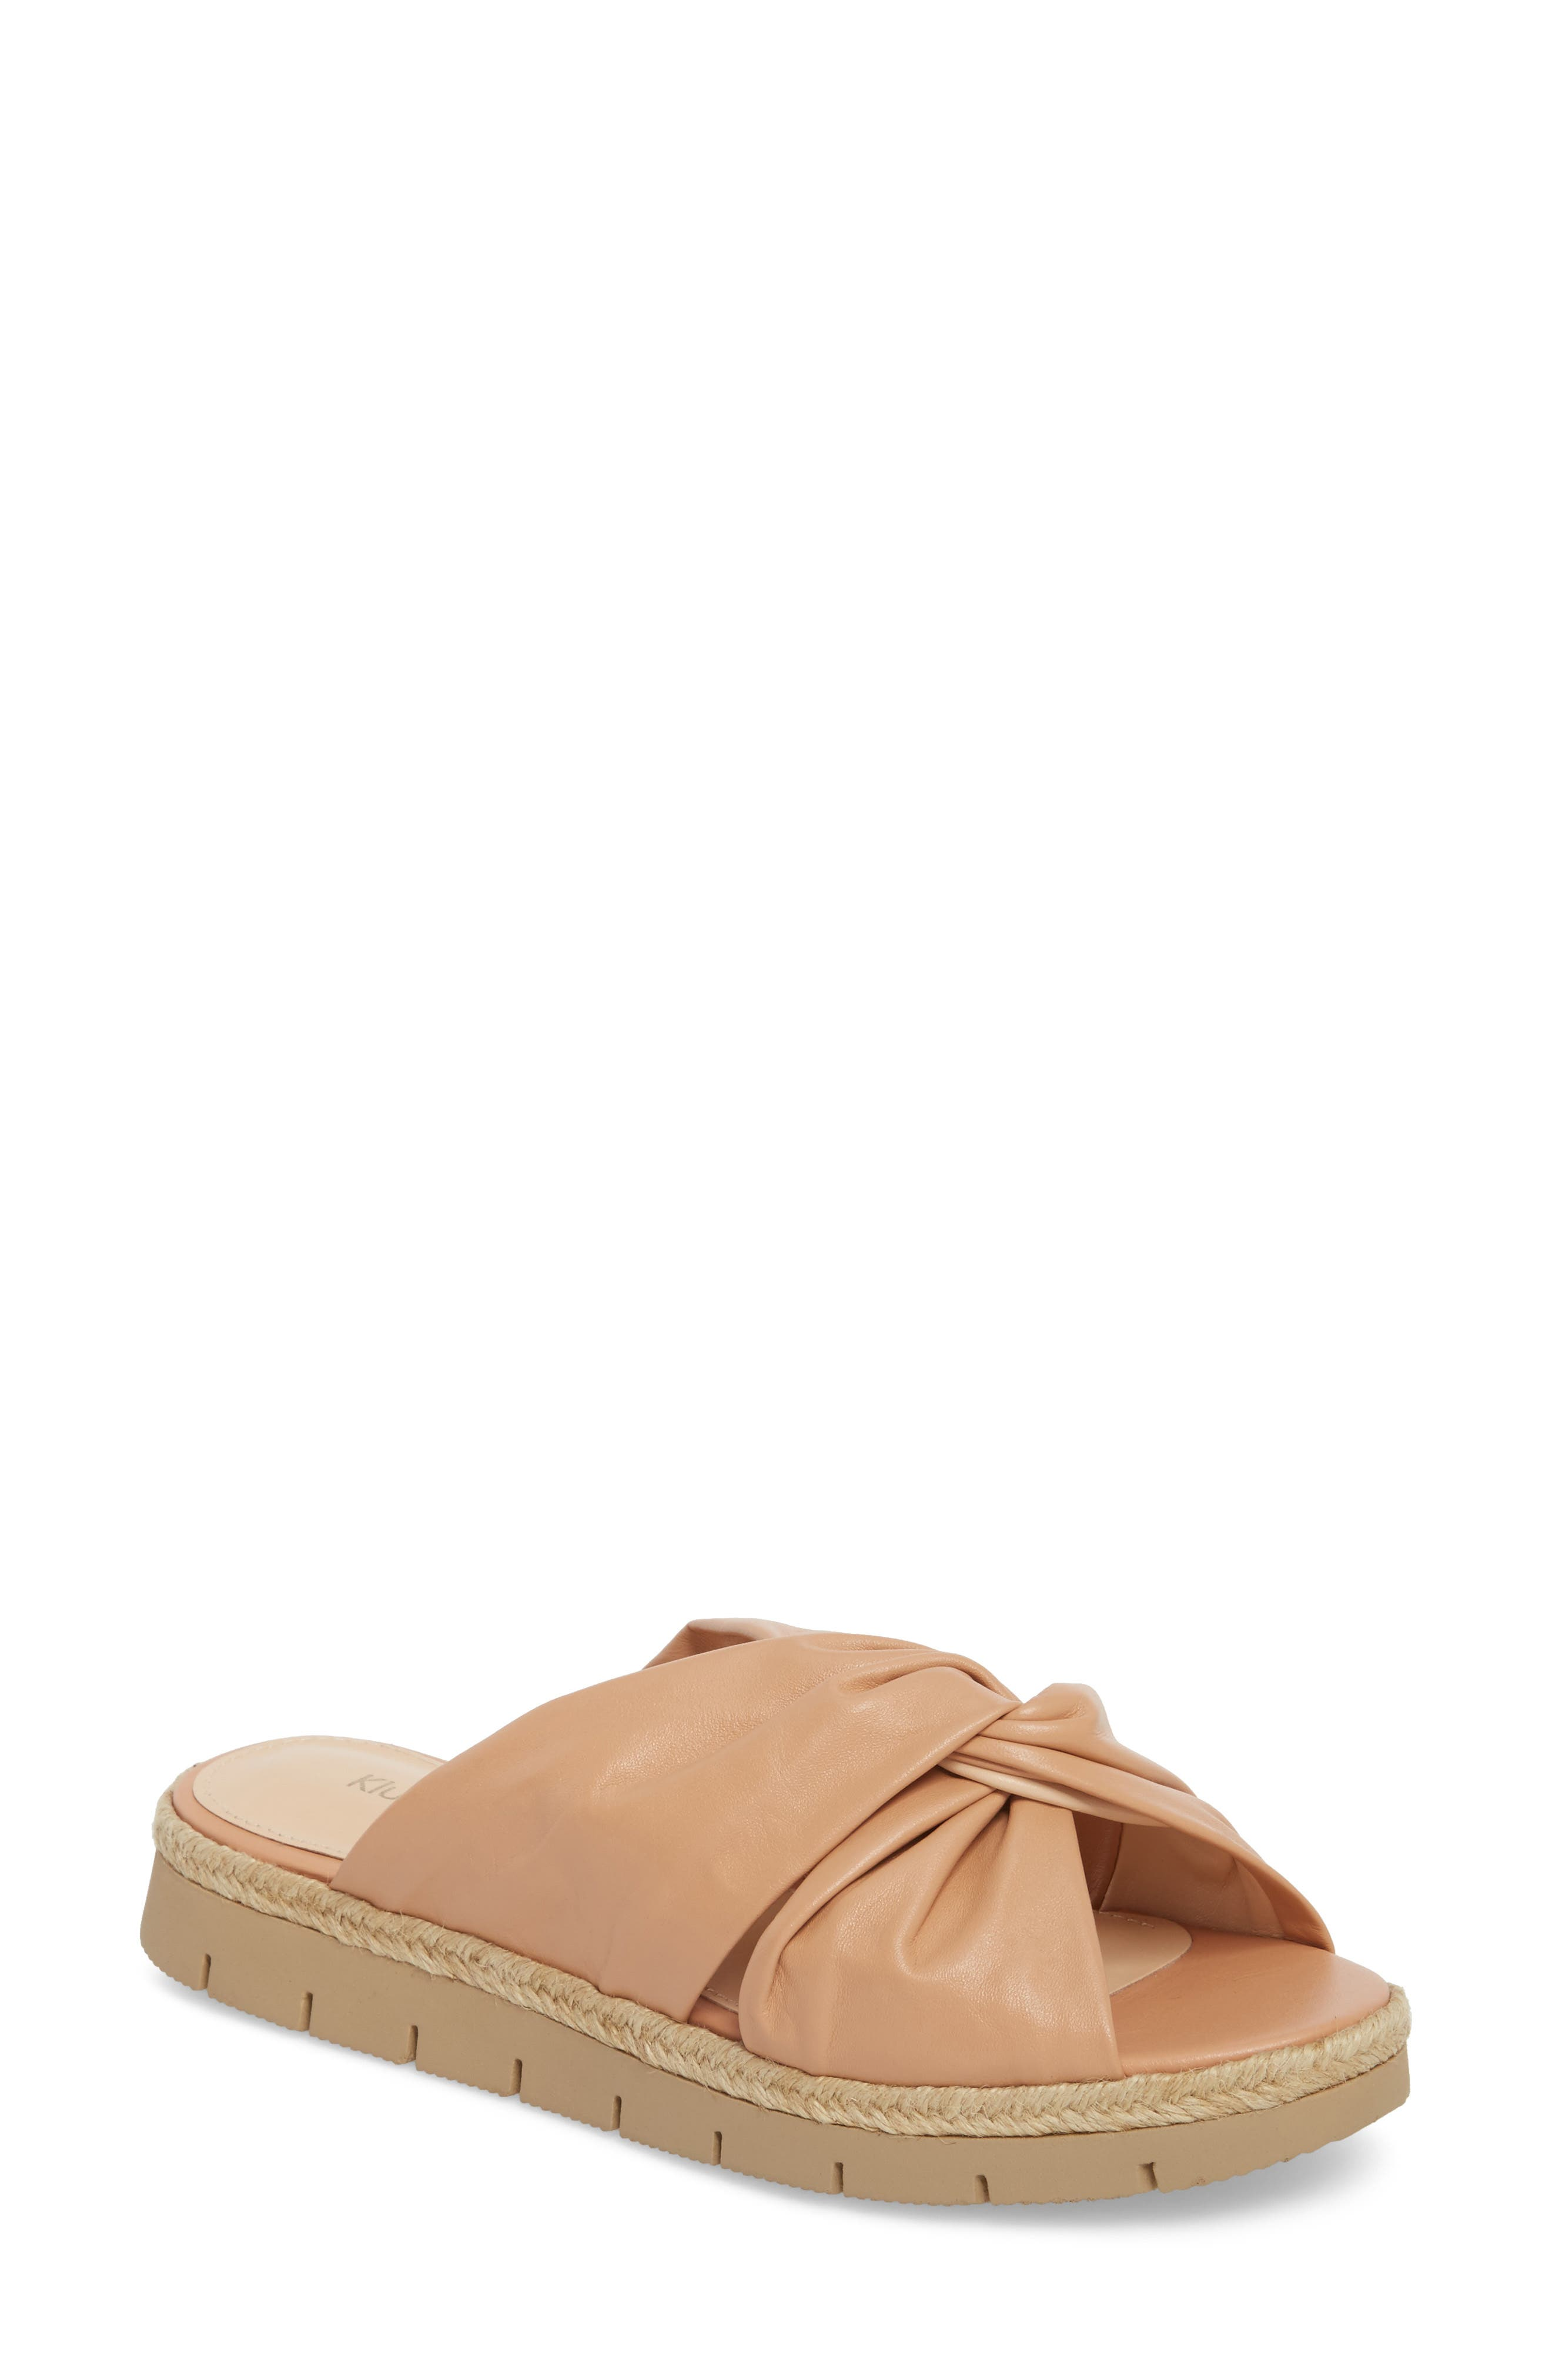 KLUB NICO, Charlie Slide Sandal, Main thumbnail 1, color, PEACH LEATHER